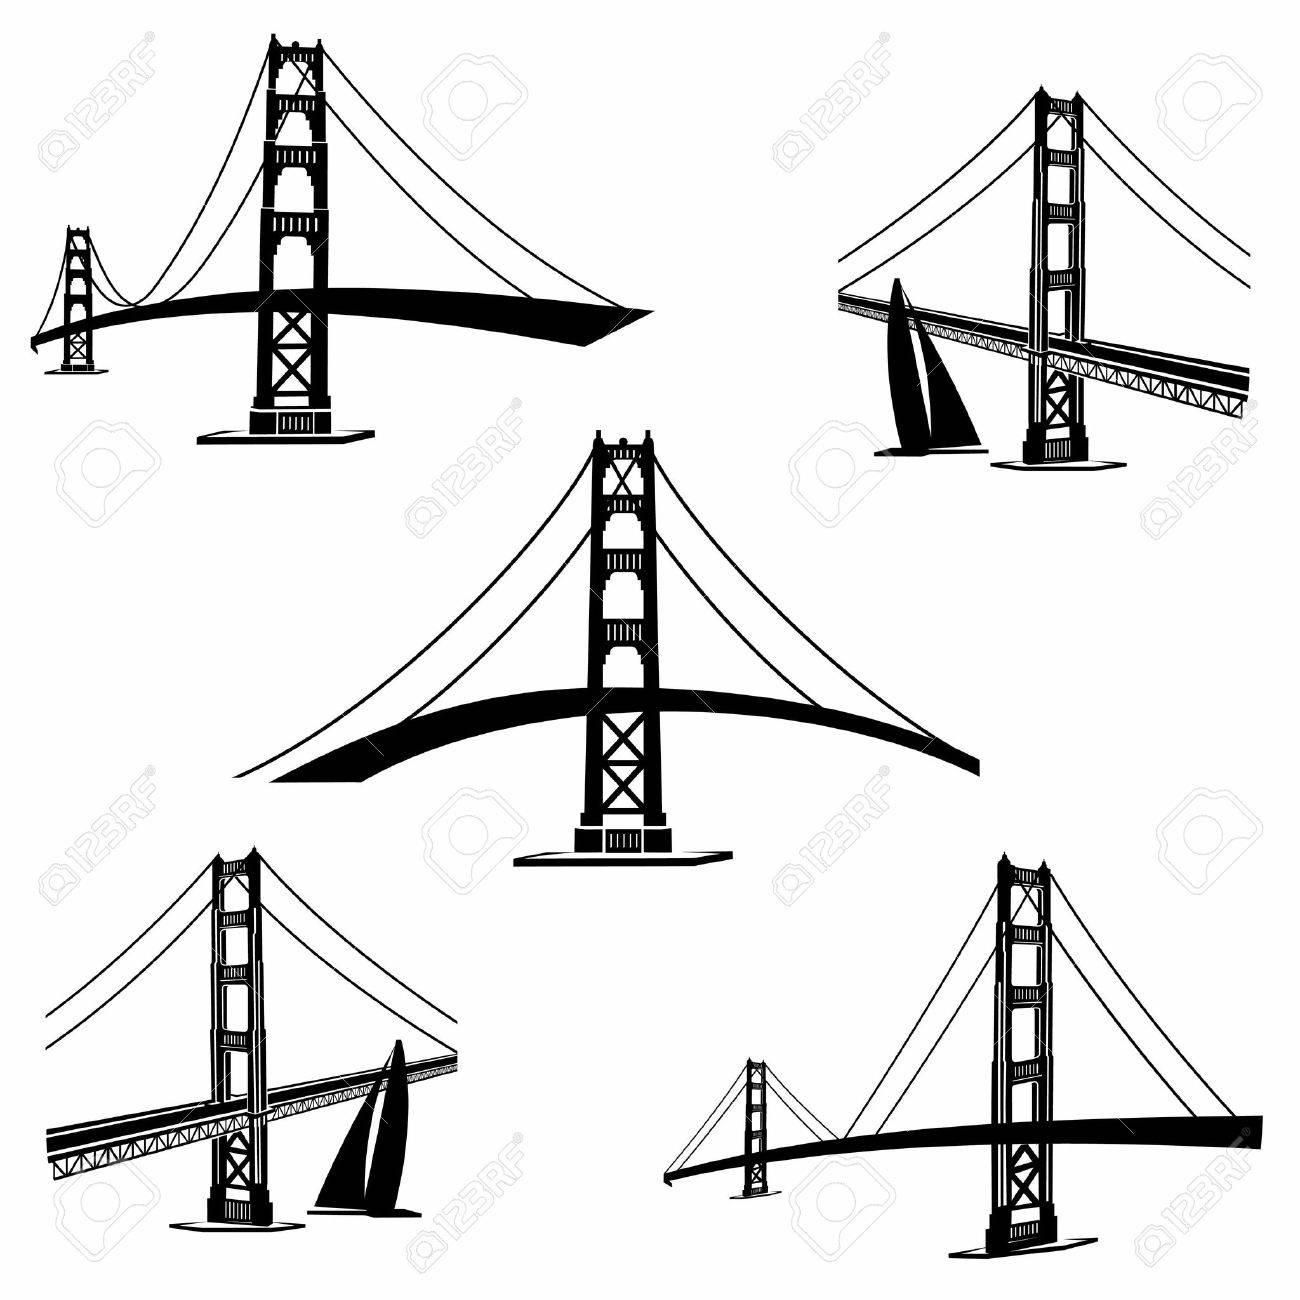 Golden Gate Bridge Line Drawing At Getdrawings